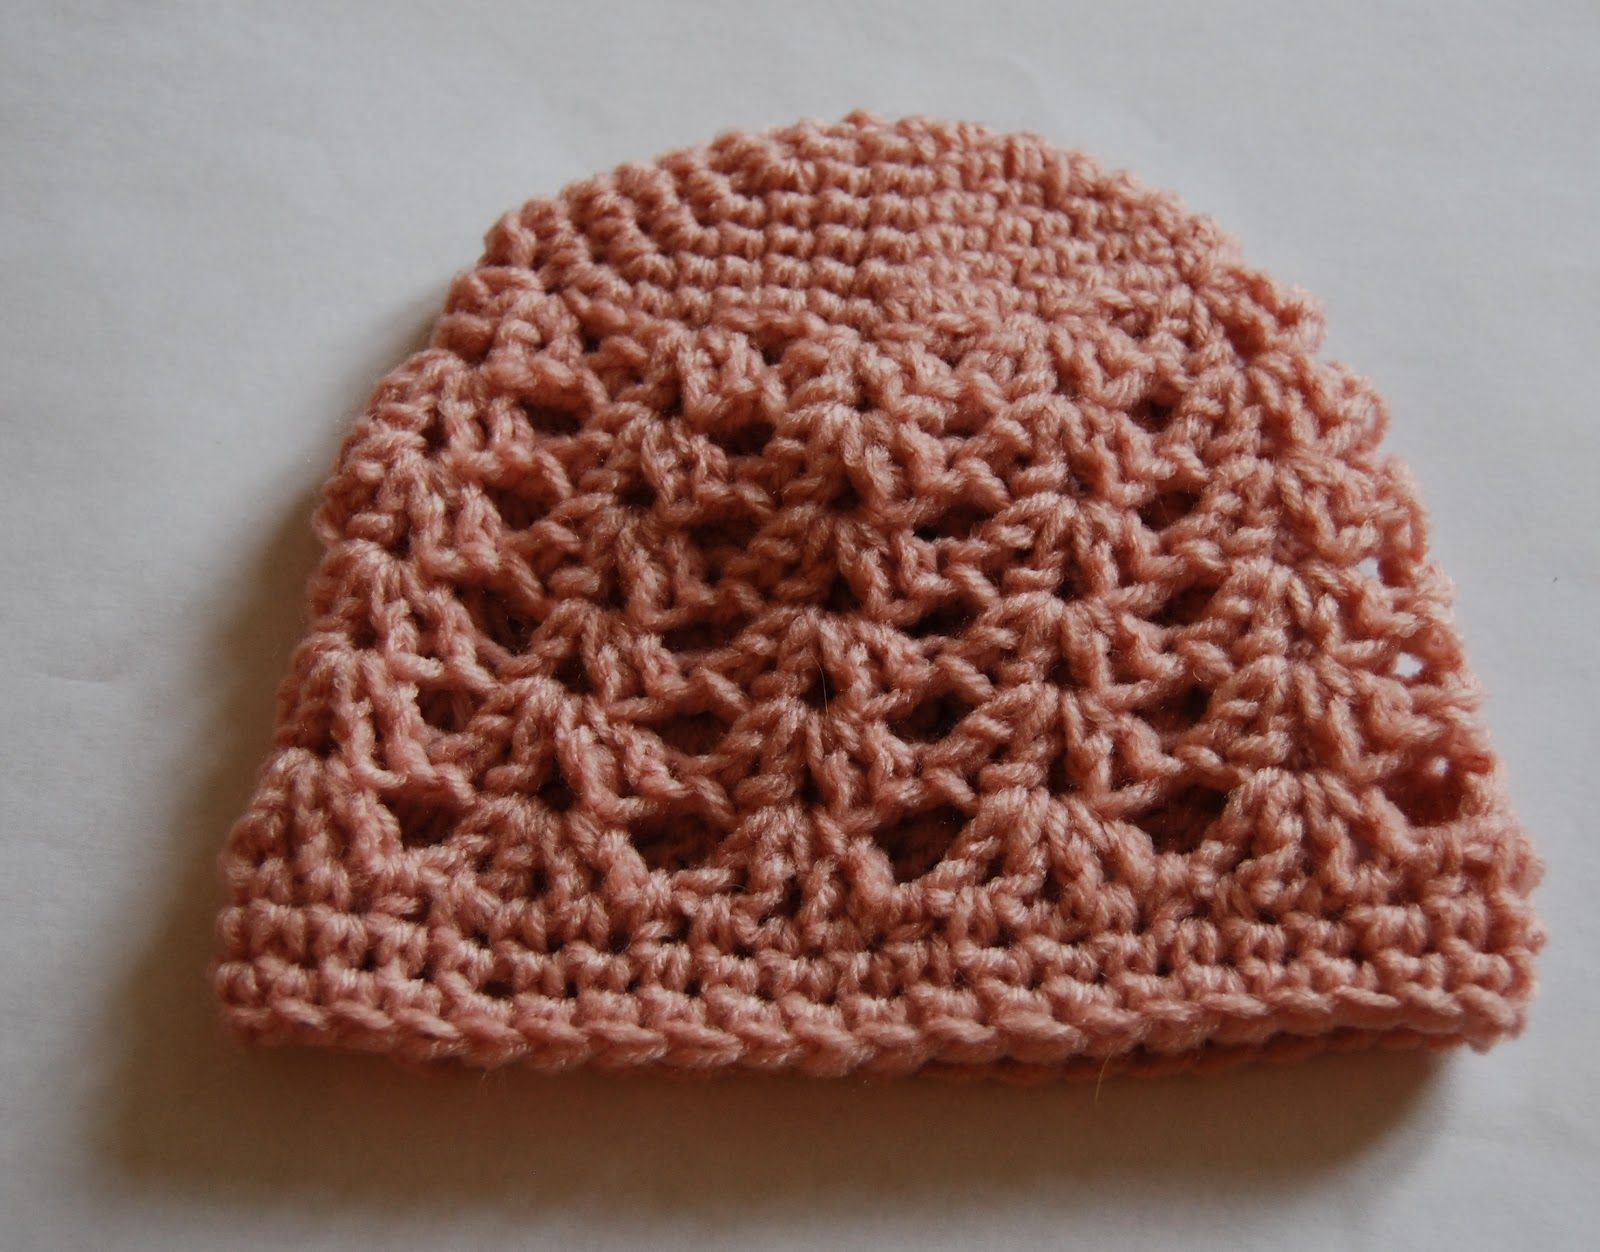 crochet baby hat patterns | Knitting & Crochet | Pinterest | Crochet ...